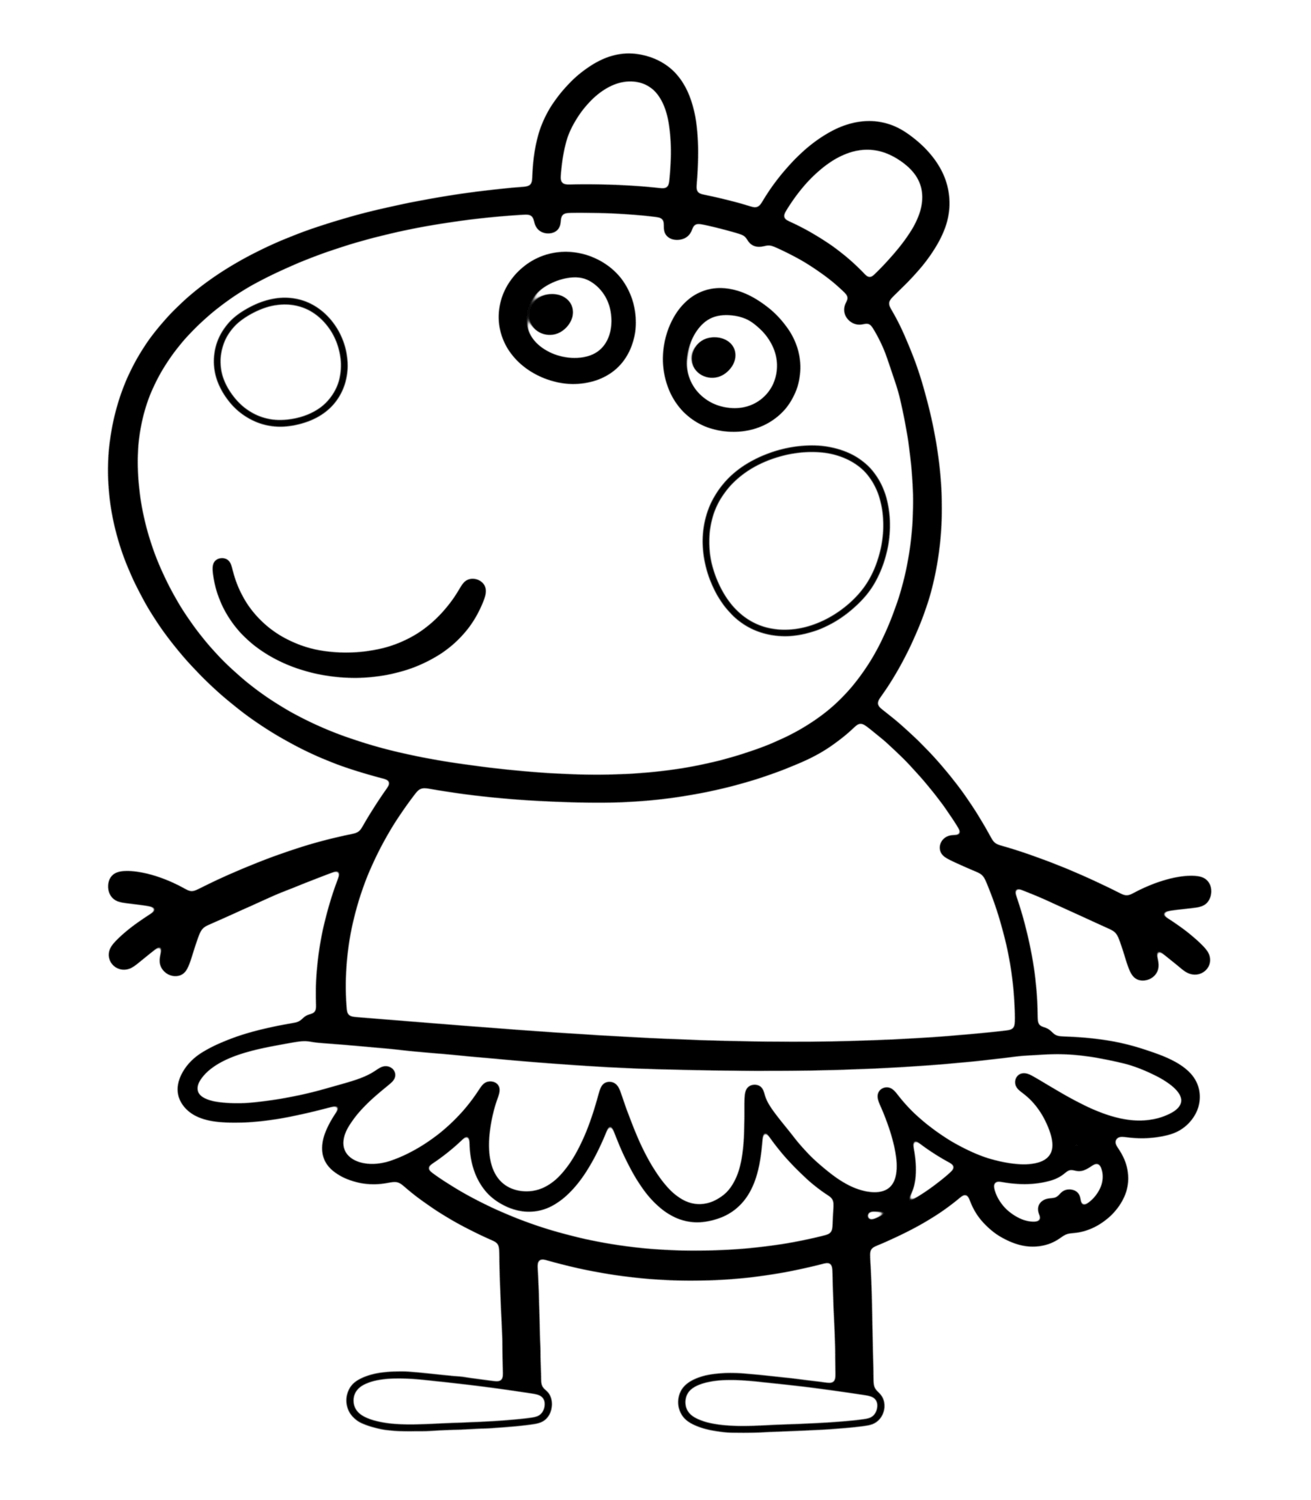 Suzy Sheep In Peppa Pig Coloring Page | Peppa Pig Colouring serapportantà Peppa Pig A Colorier